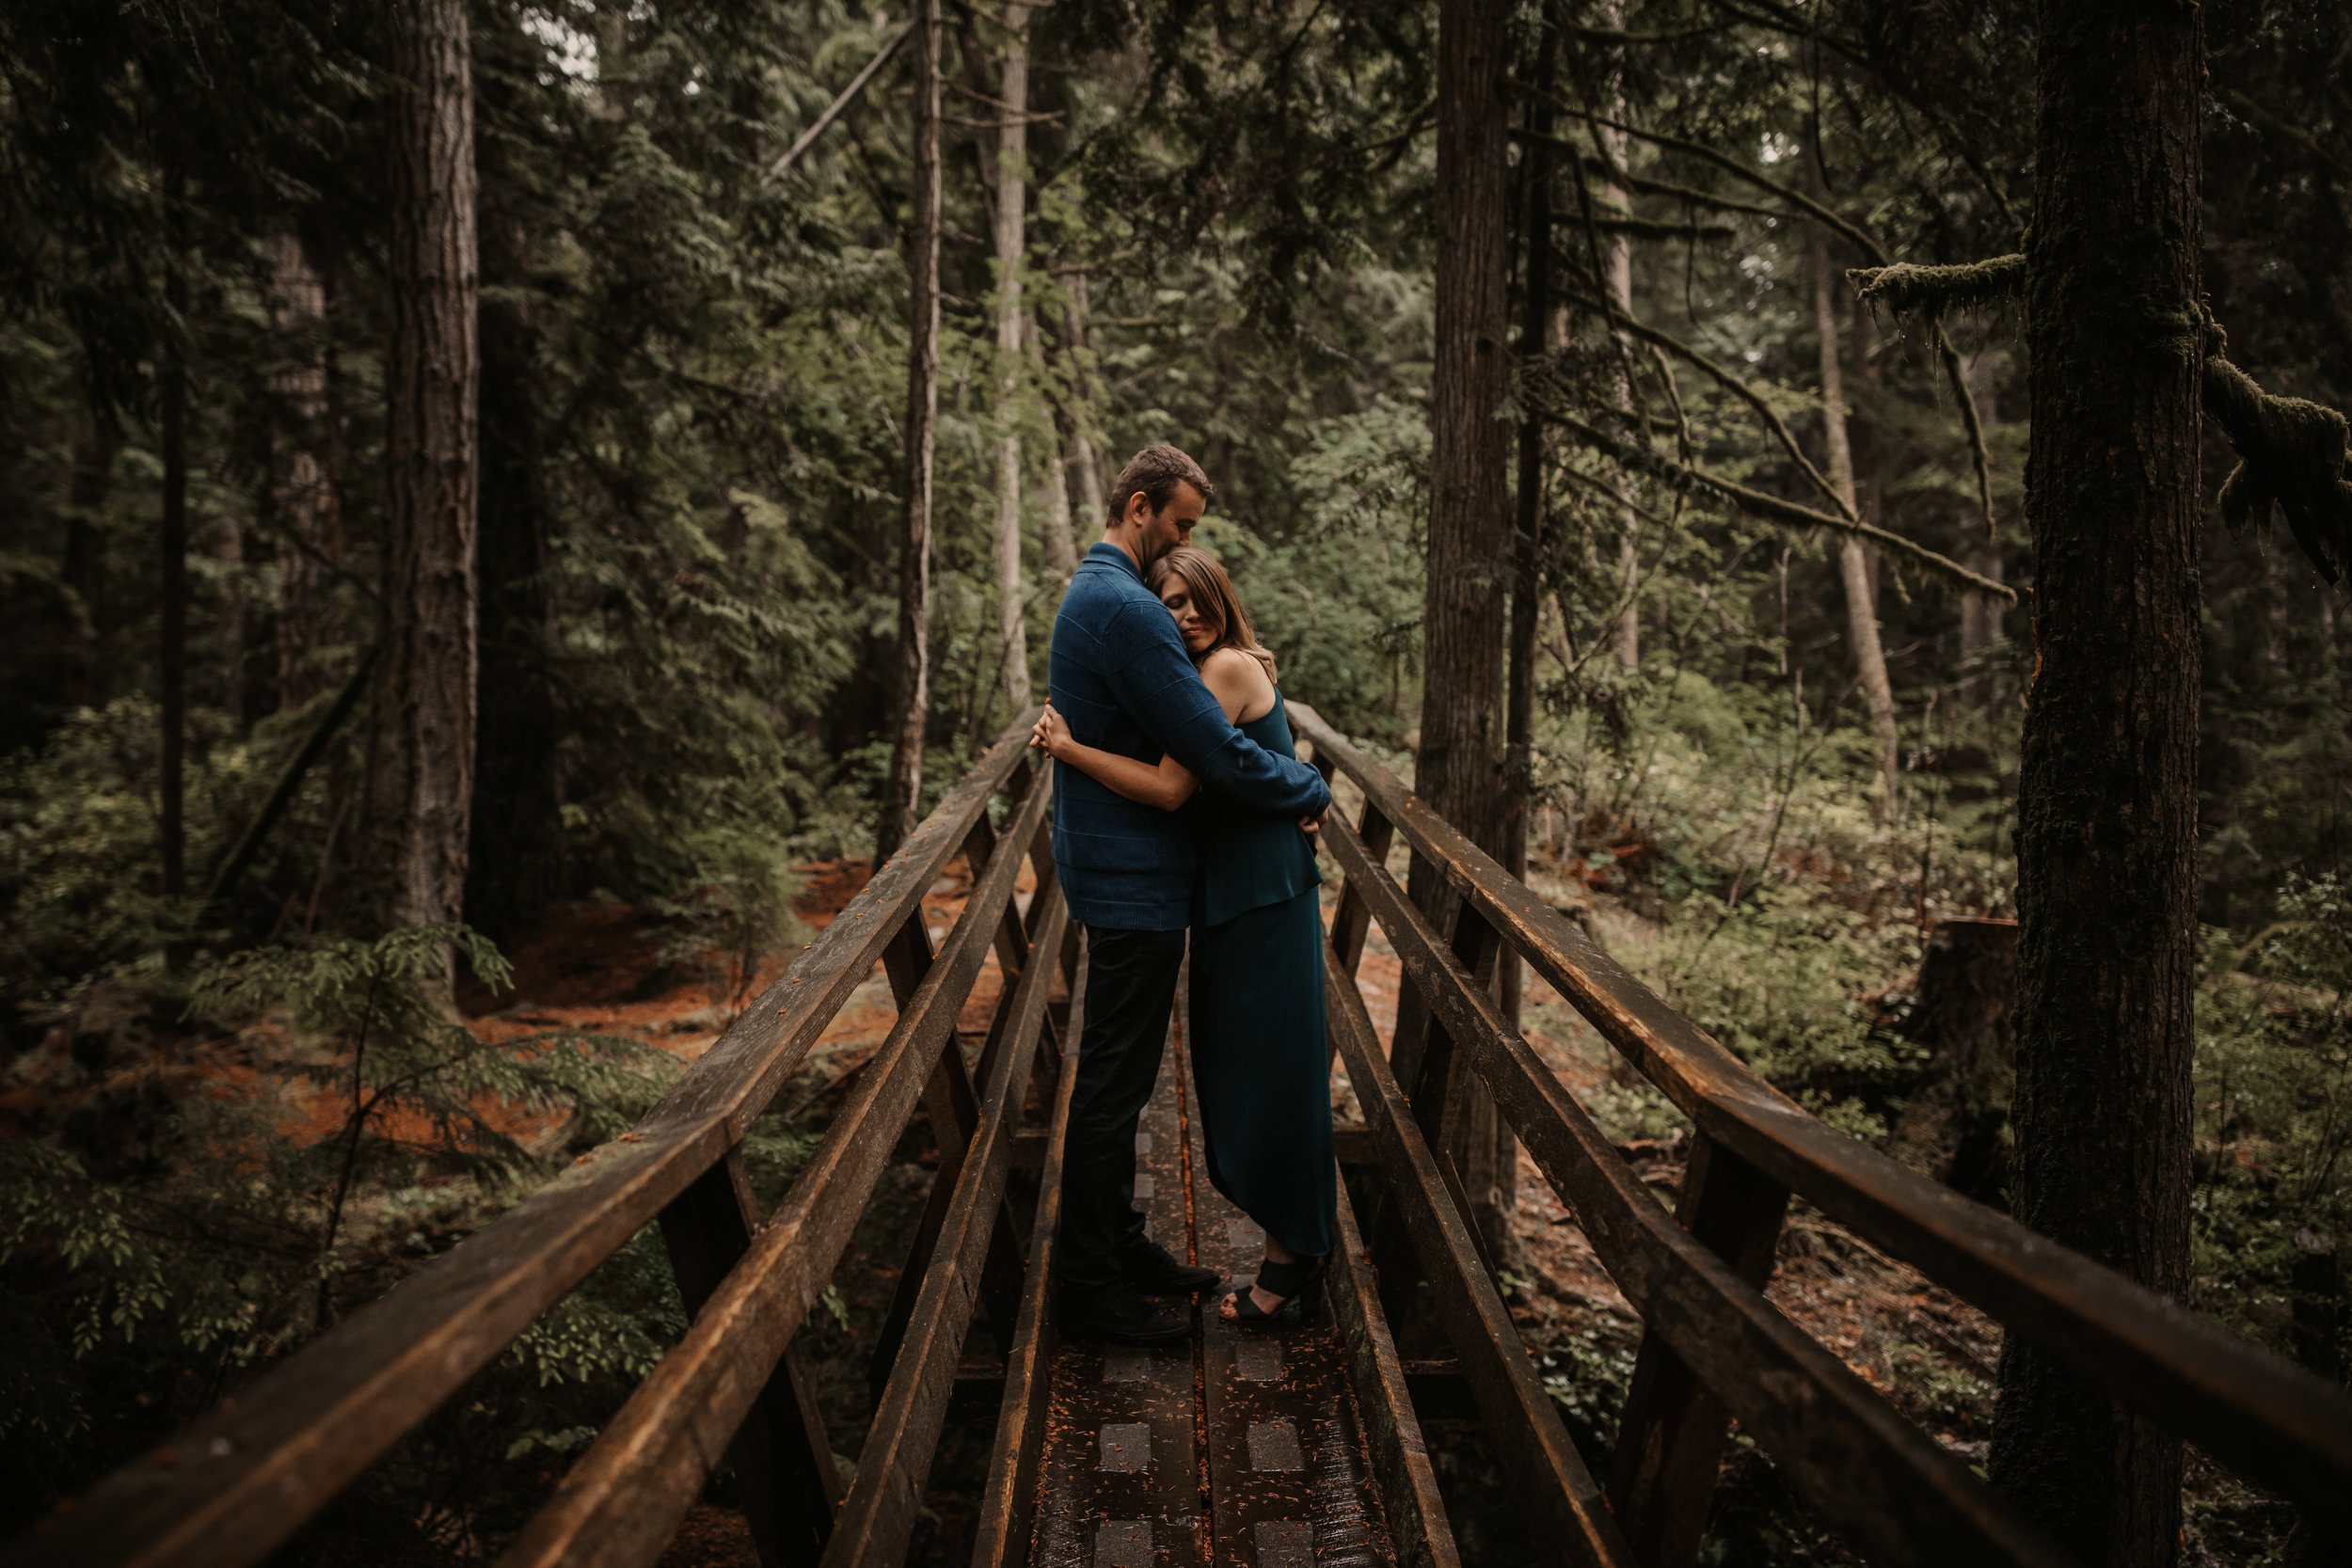 SUNSHINE COAST FOREST & BEACH ENGAGEMENT PHOTOS — Ashley & Antoine — JENNIFER PICARD PHOTOGRAPHY220.JPG